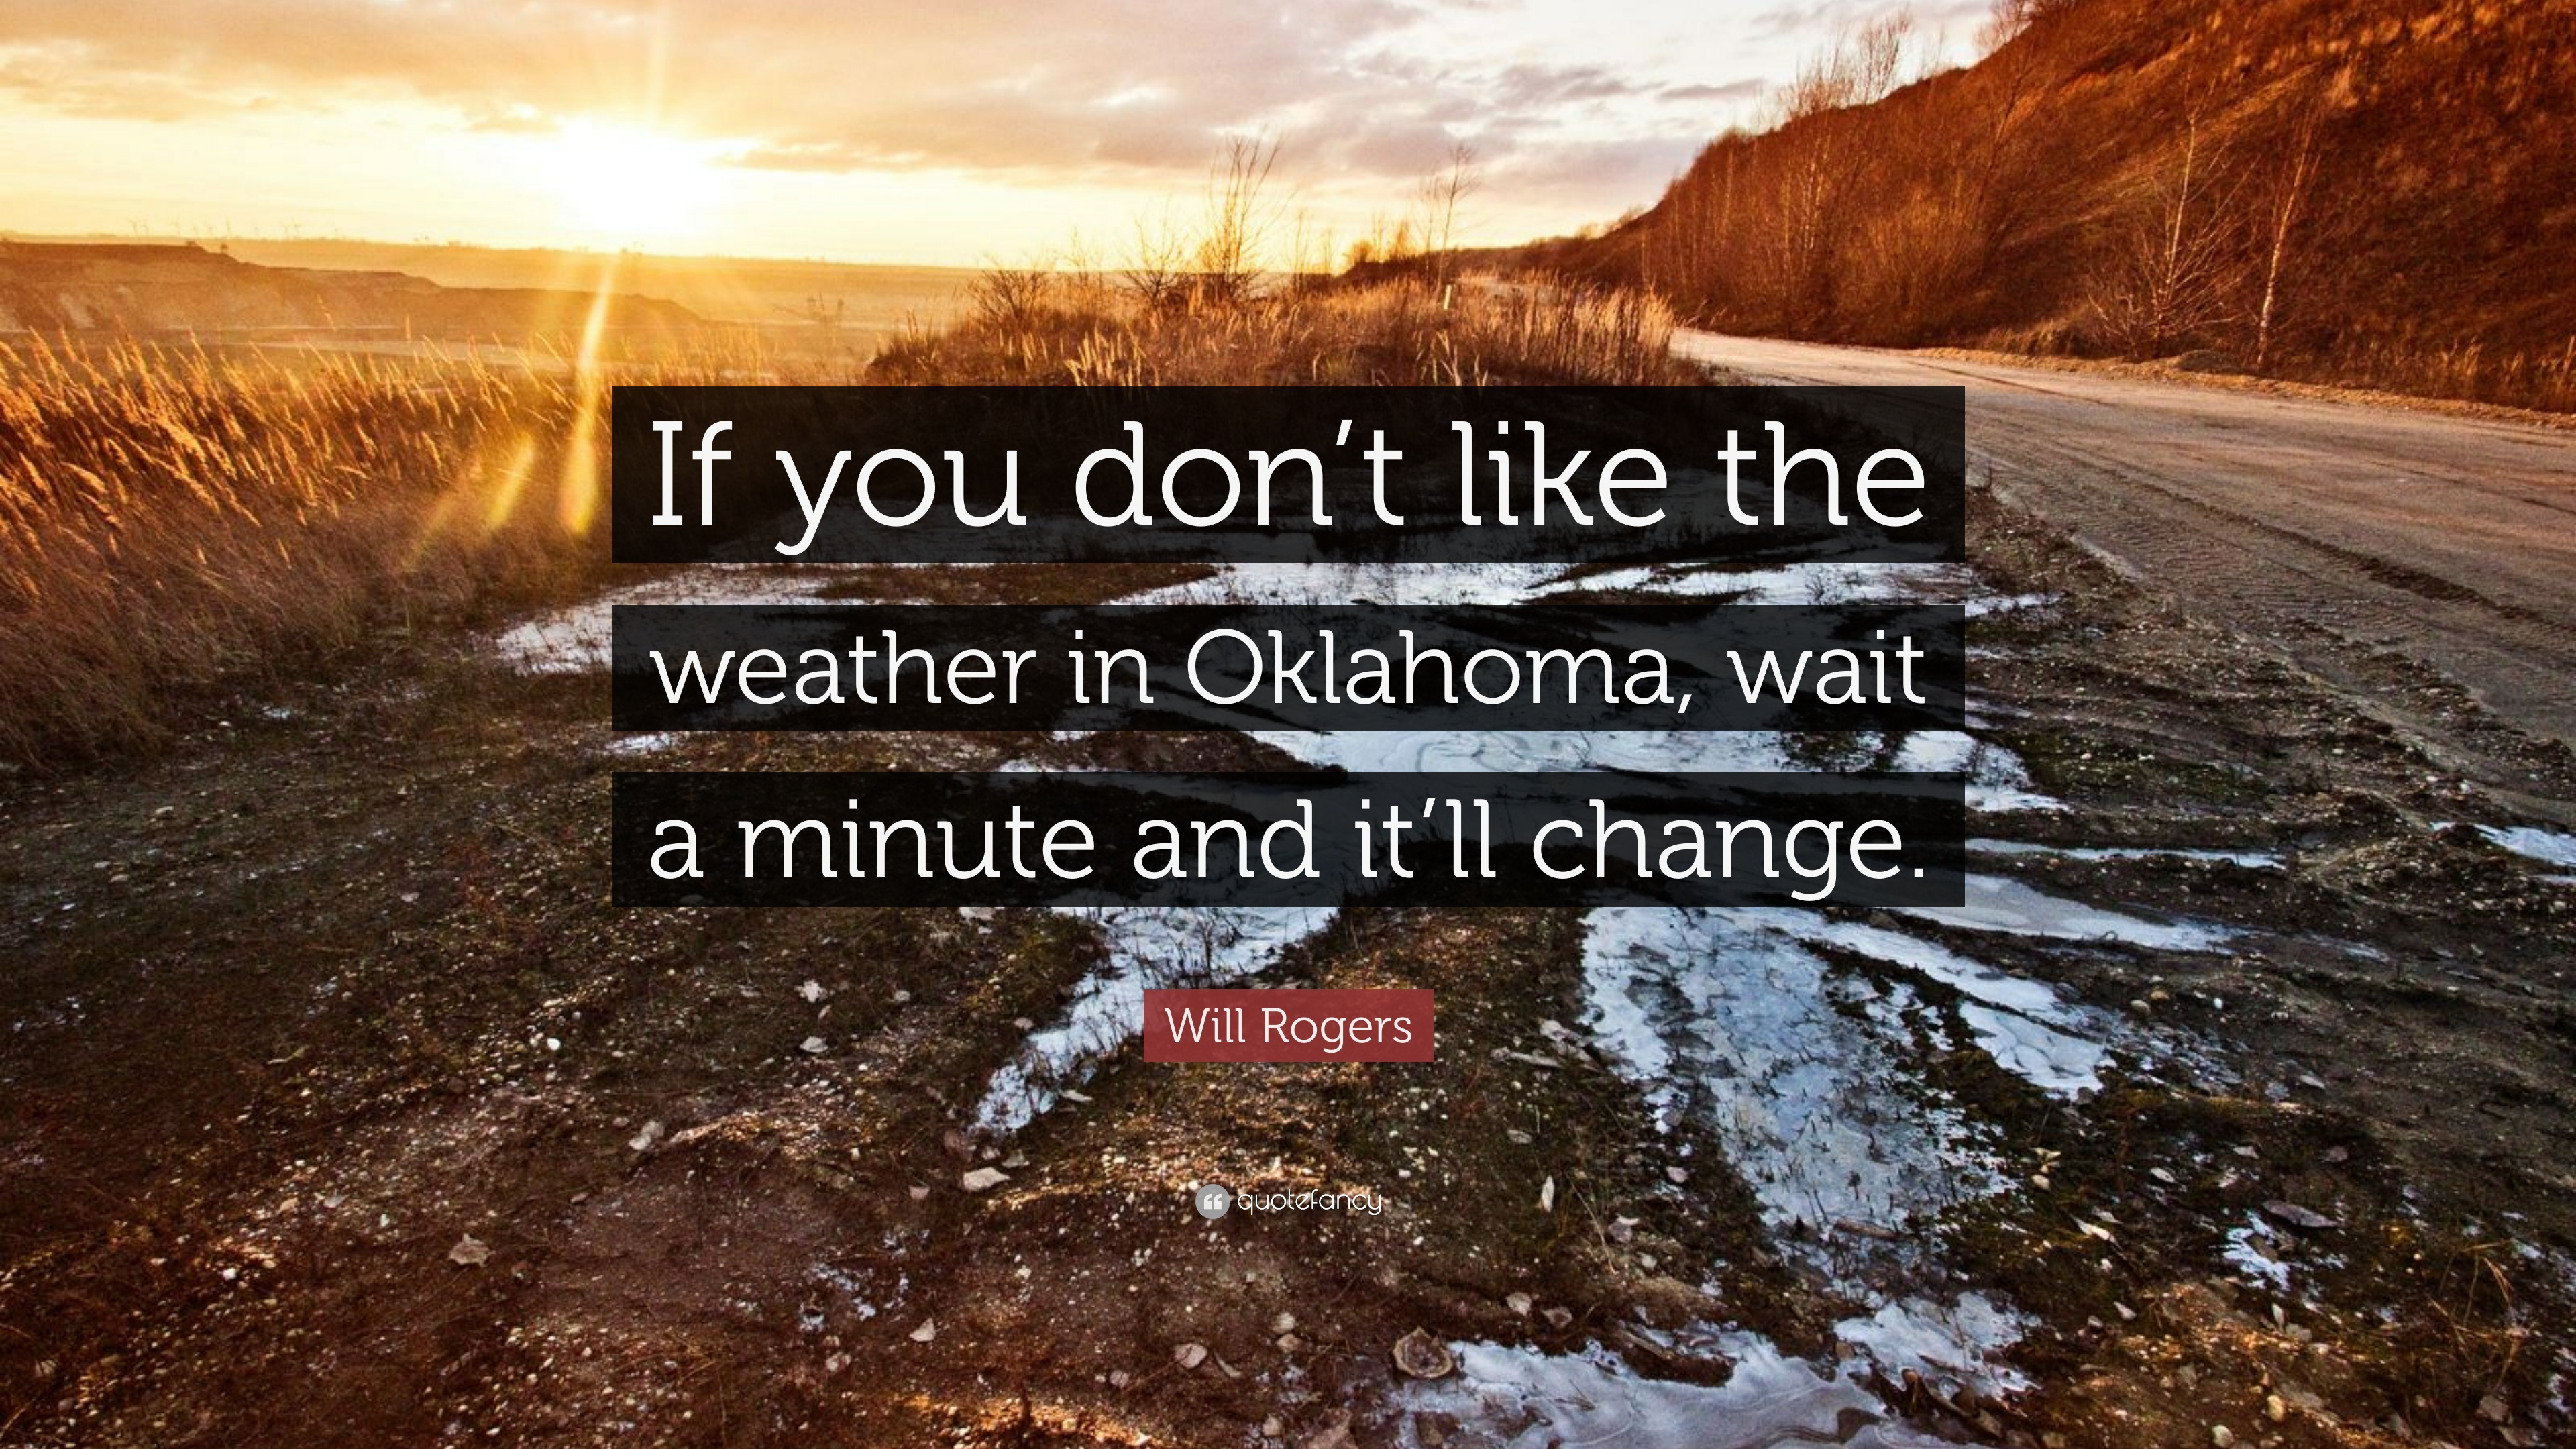 Like Weather What Will Rogers Quote If You Don T Like The Weather In Oklahoma